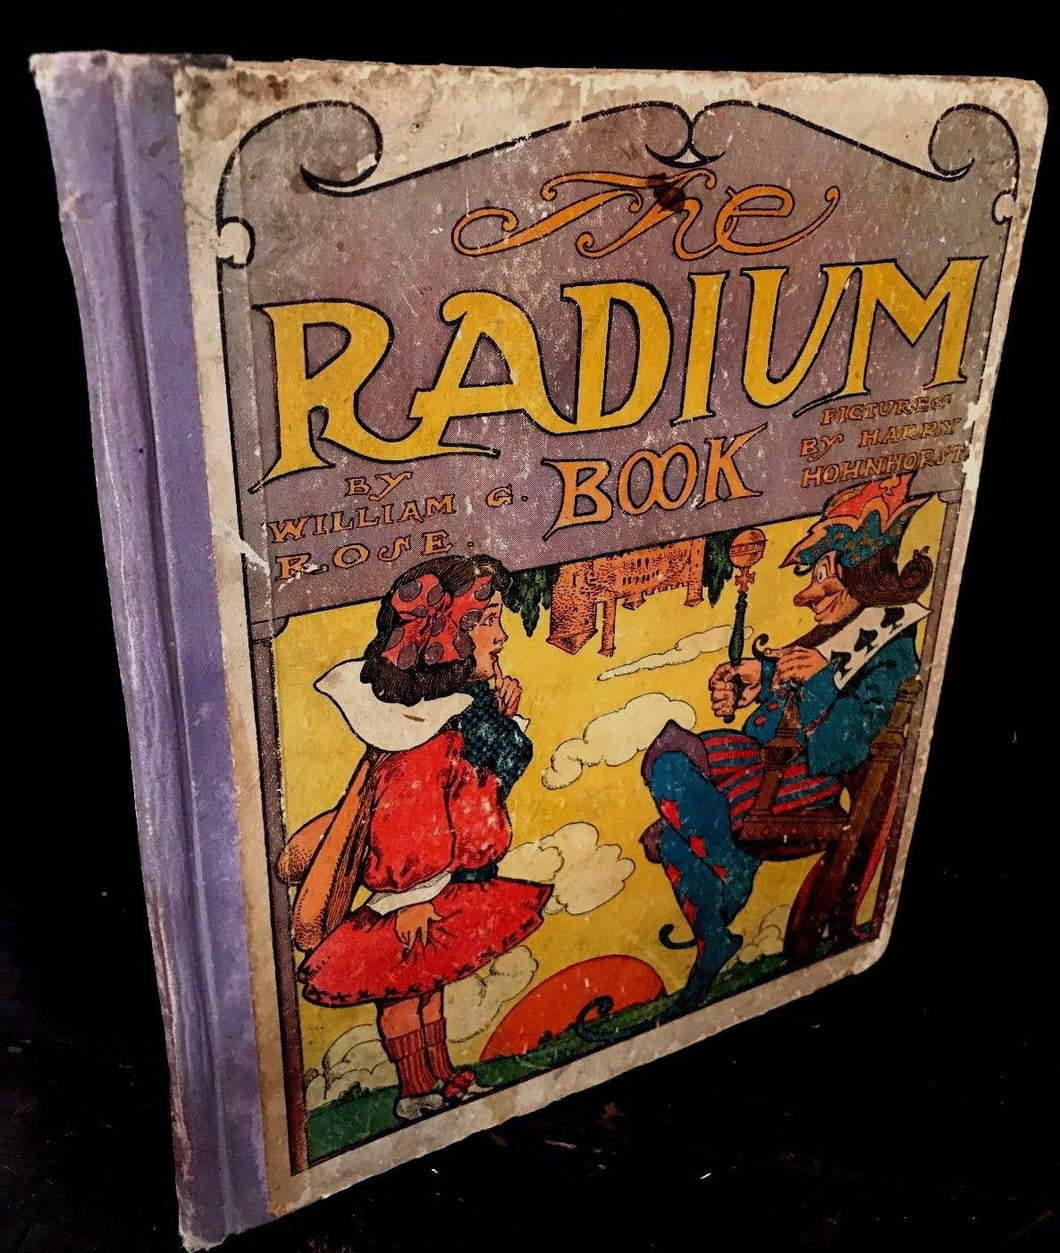 THE RADIUM BOOK - William Rose, RARE